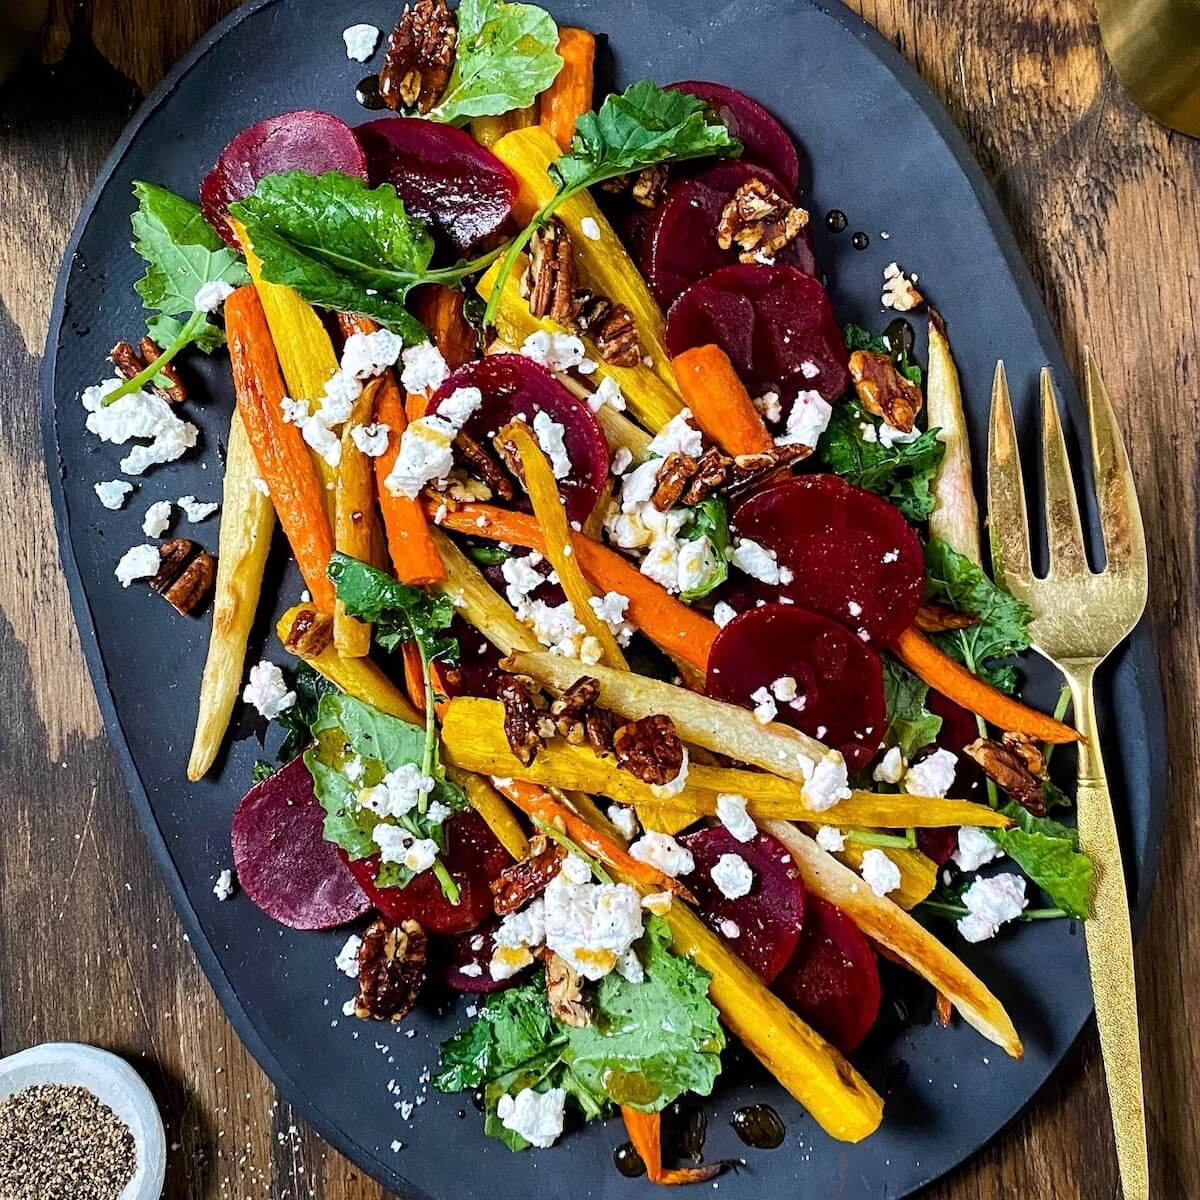 kale and beets with roasted carrots and goat cheese on a black platter